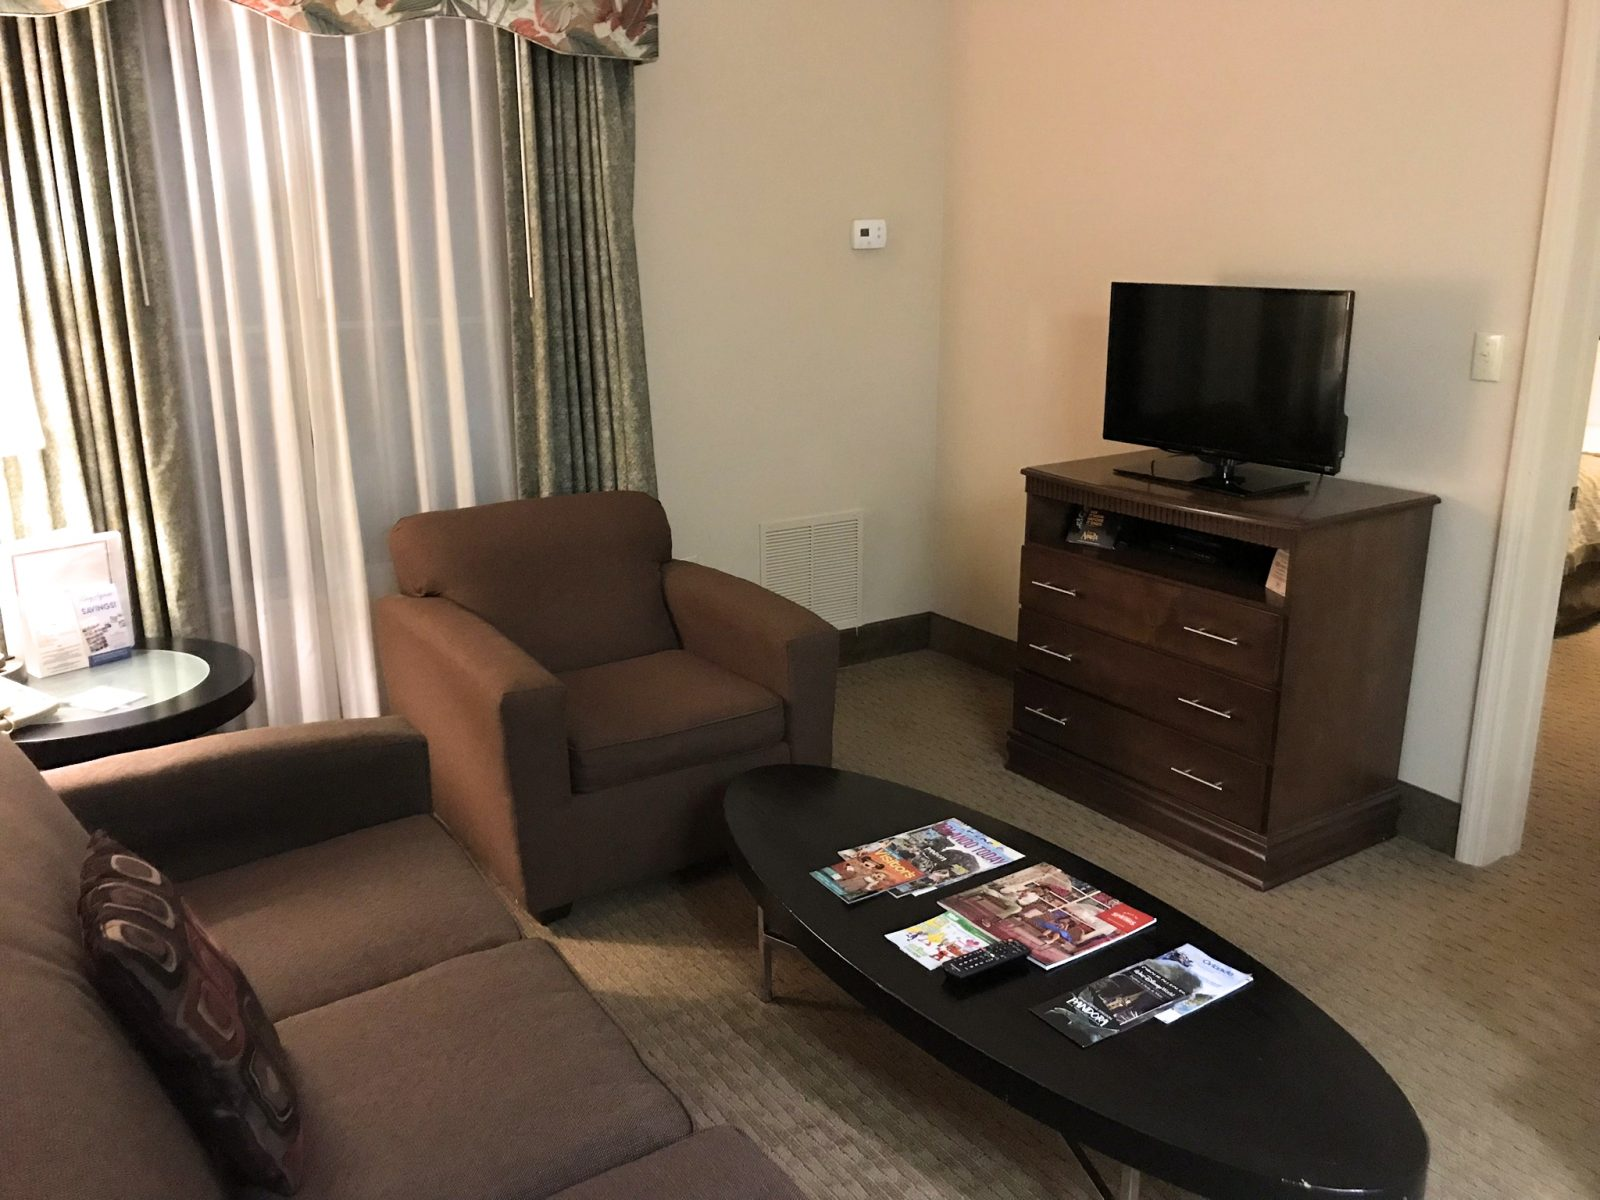 sitting area in the room, brown couches, black tables and tv